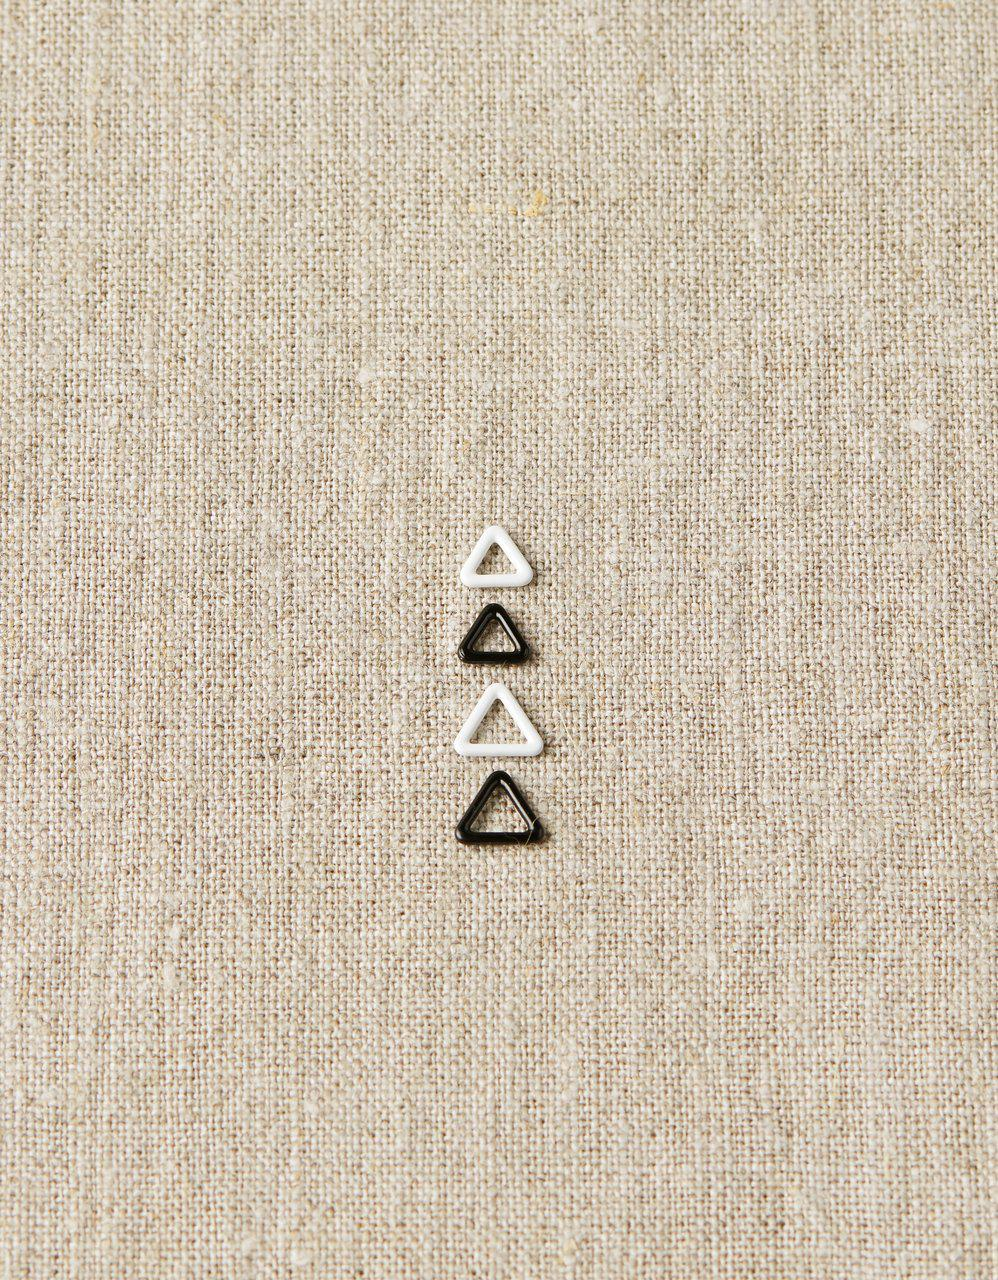 Cocoknits | Triangle (extra small) Stitch Markers